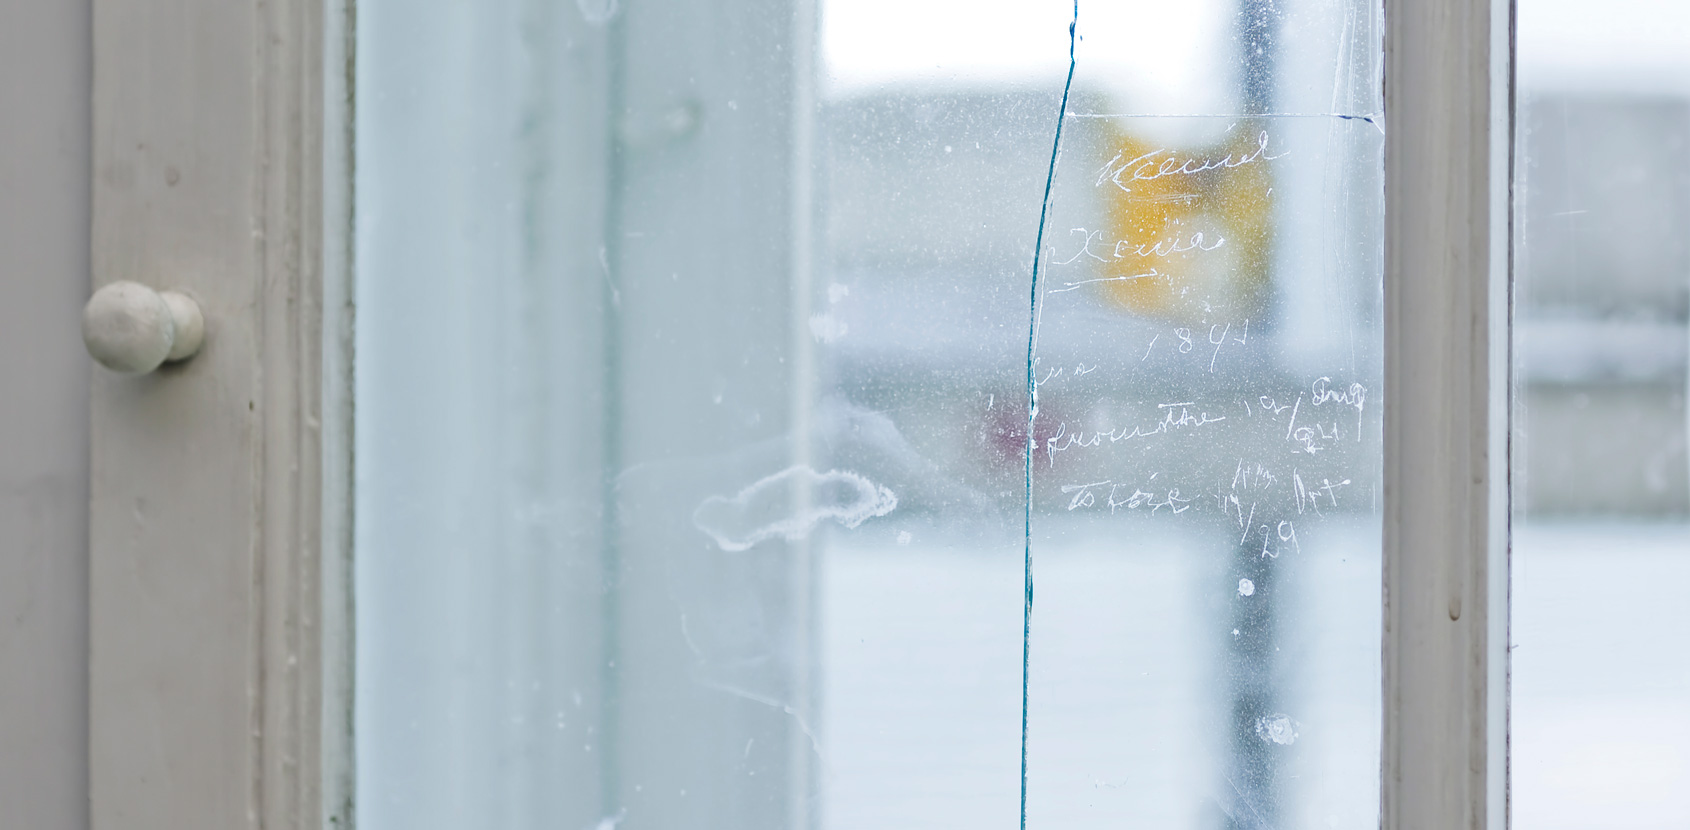 Kings and presidents have scratched their signatures on the panes of window glass. Photo: Kira Krøis Ursem